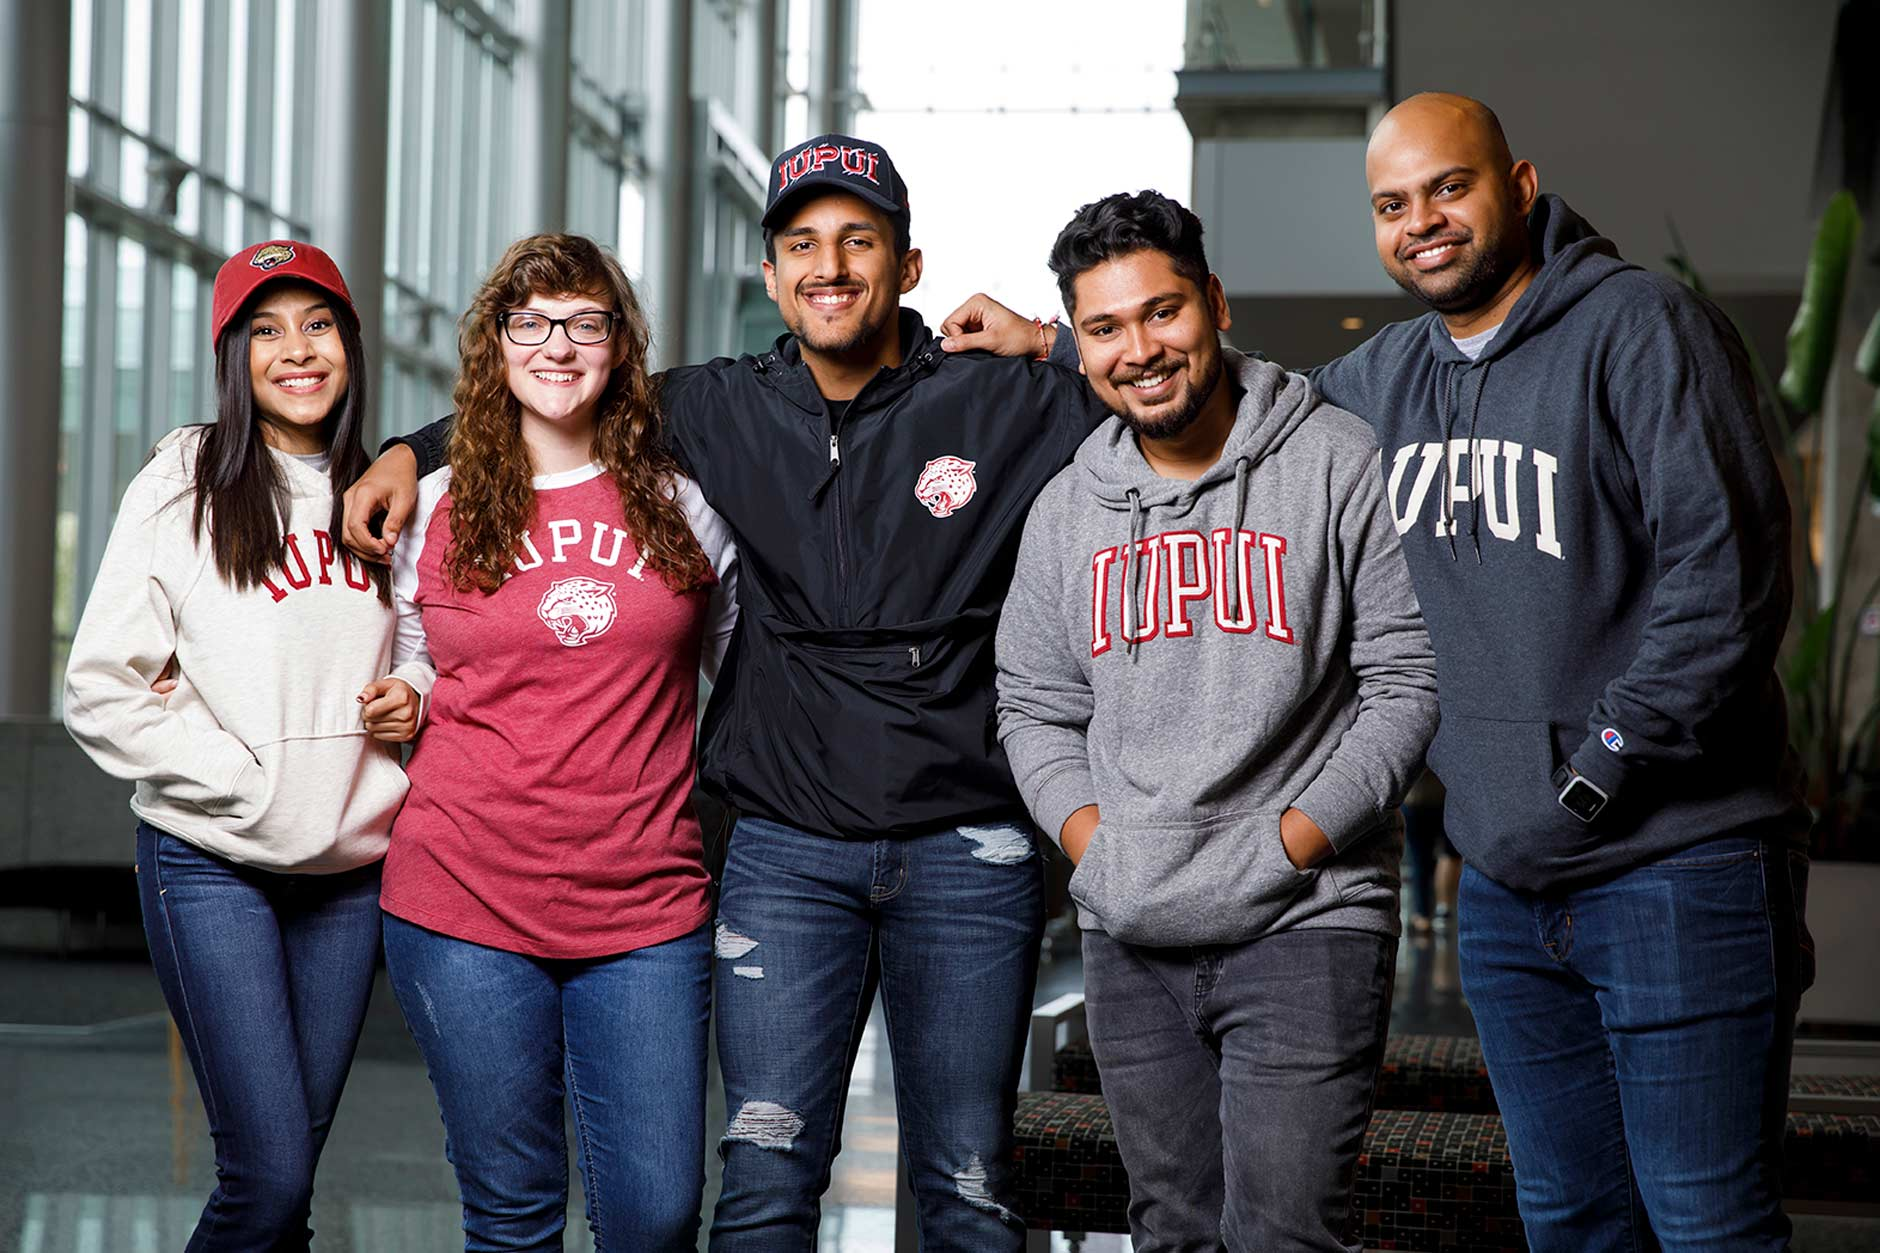 IUPUI students Naeema Patel, left, Miranda Williams, Joshua Khan, Harshal Dhamade and Karan Patel pose for a group photo during an IUPUI apparel fashion photo shoot at the Campus Center on Wednesday, Aug. 8, 2018.